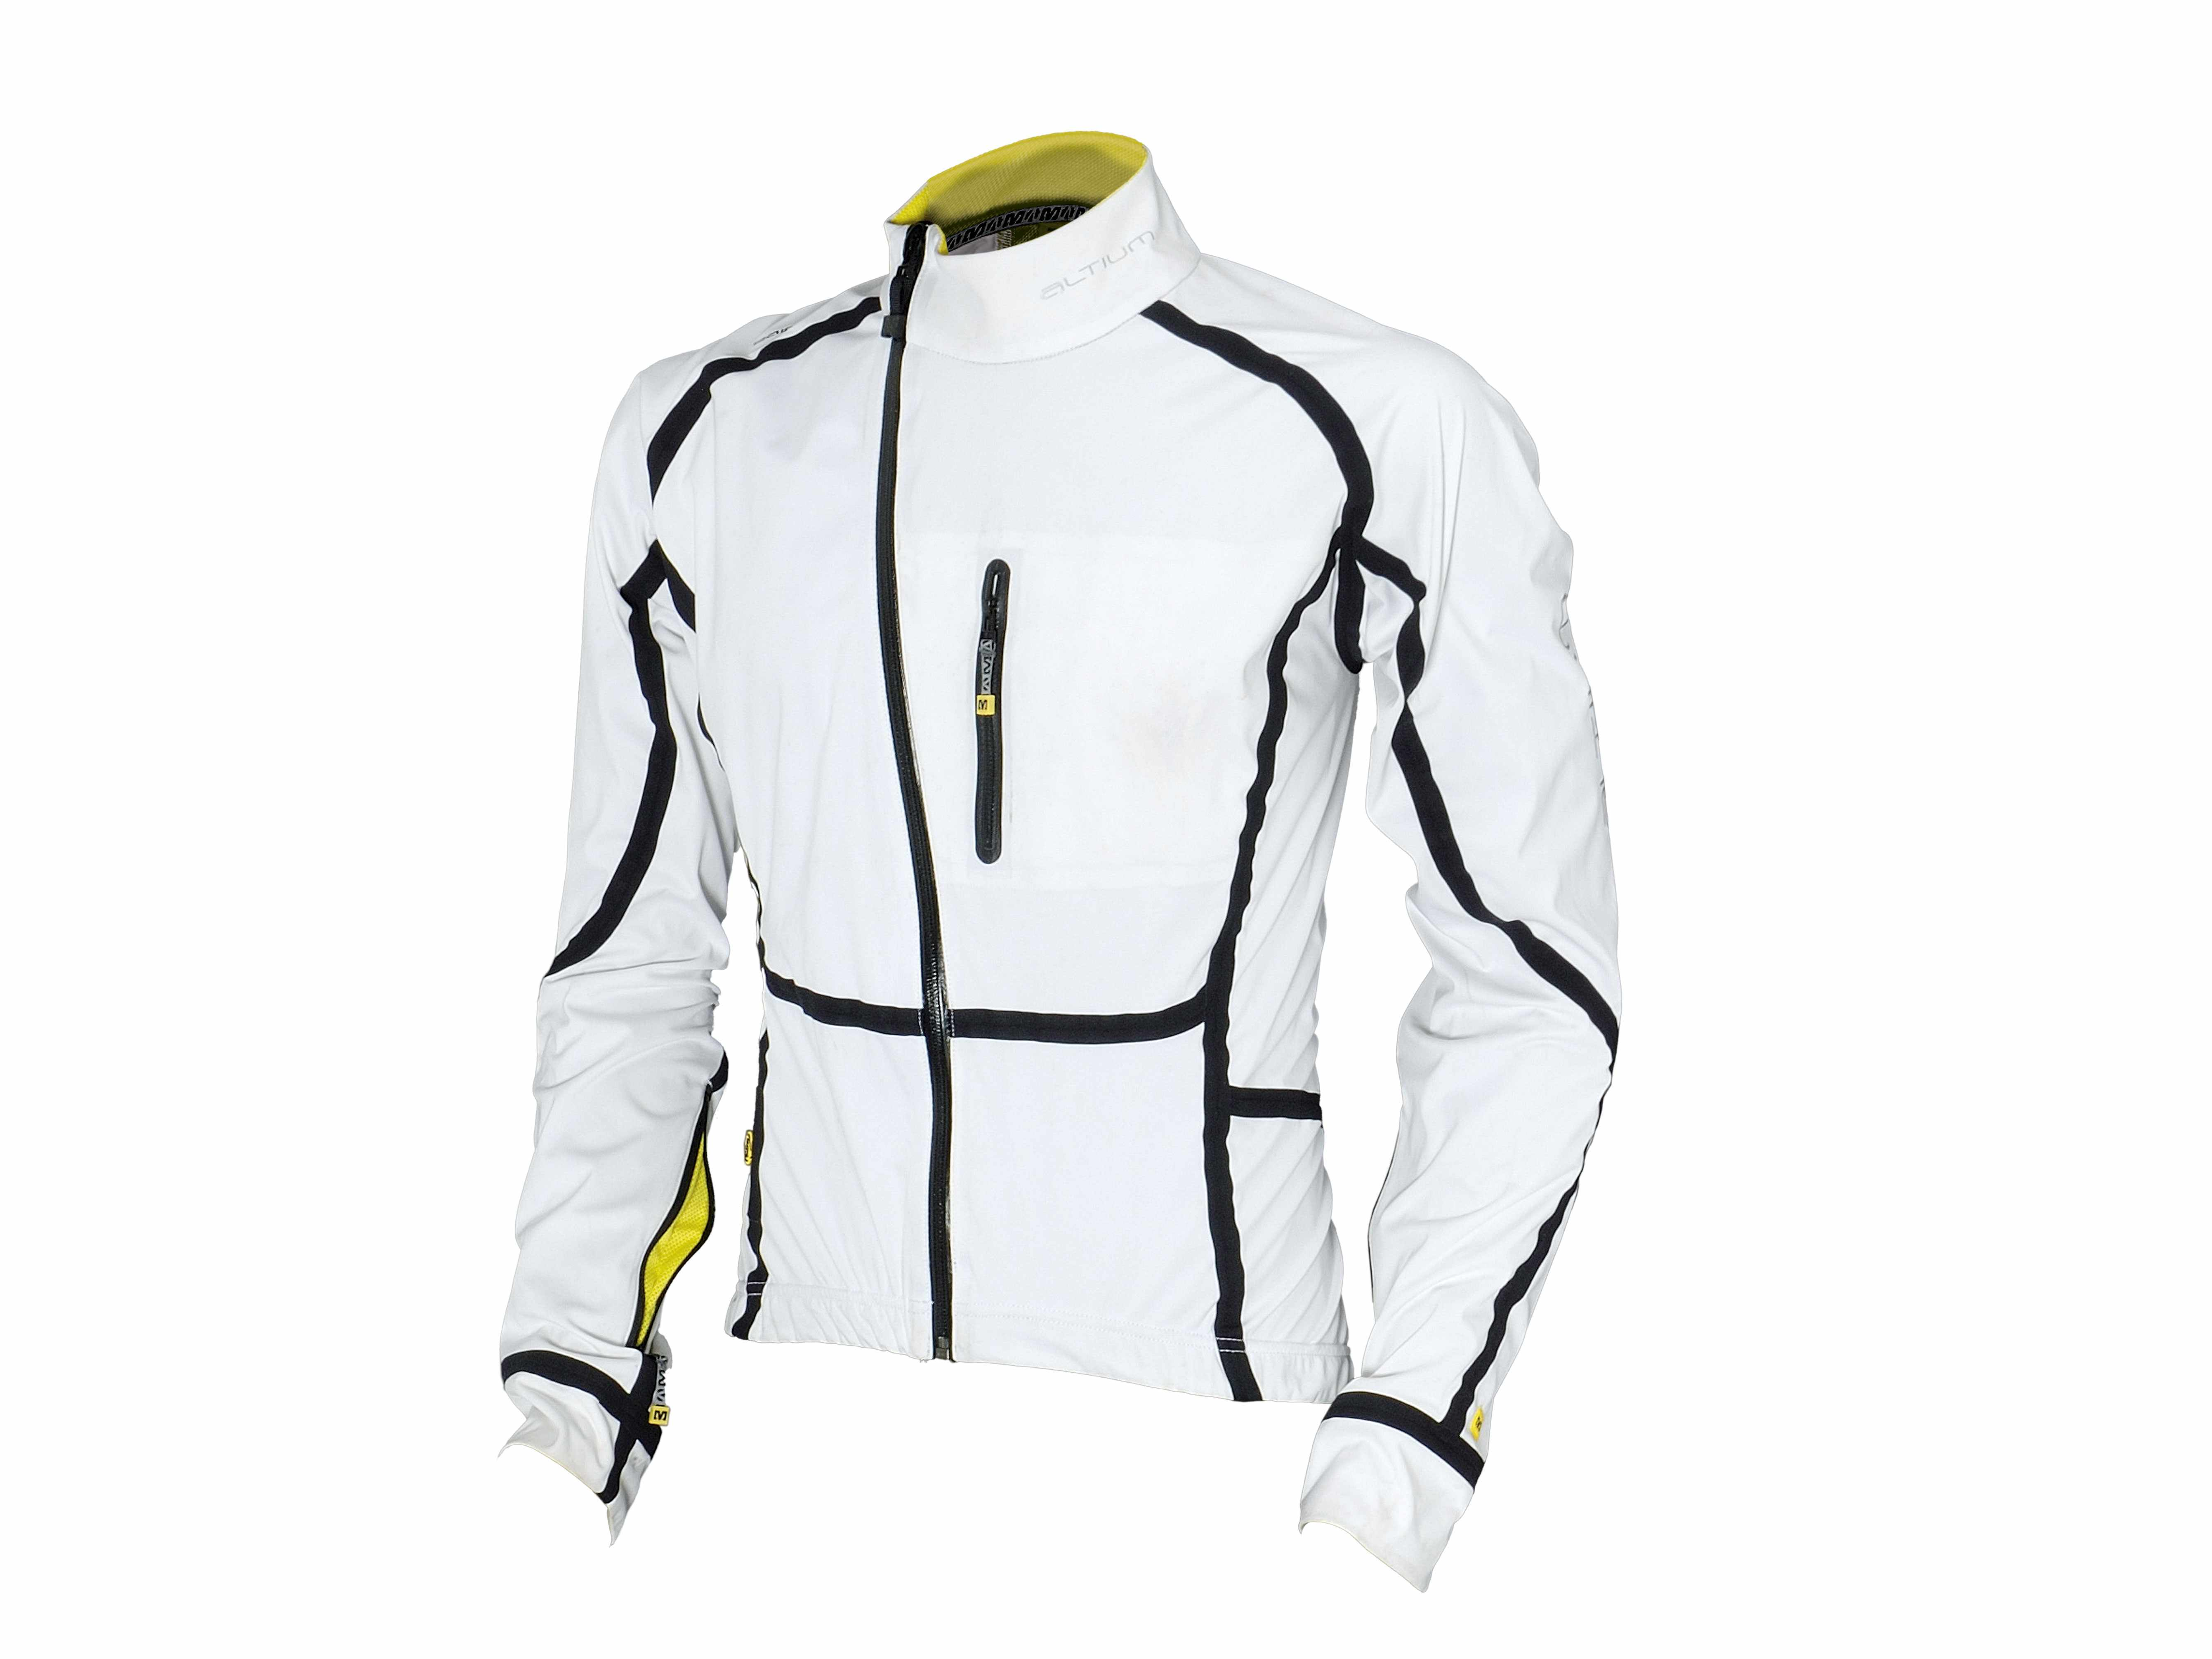 Mavic Hydro Jacket